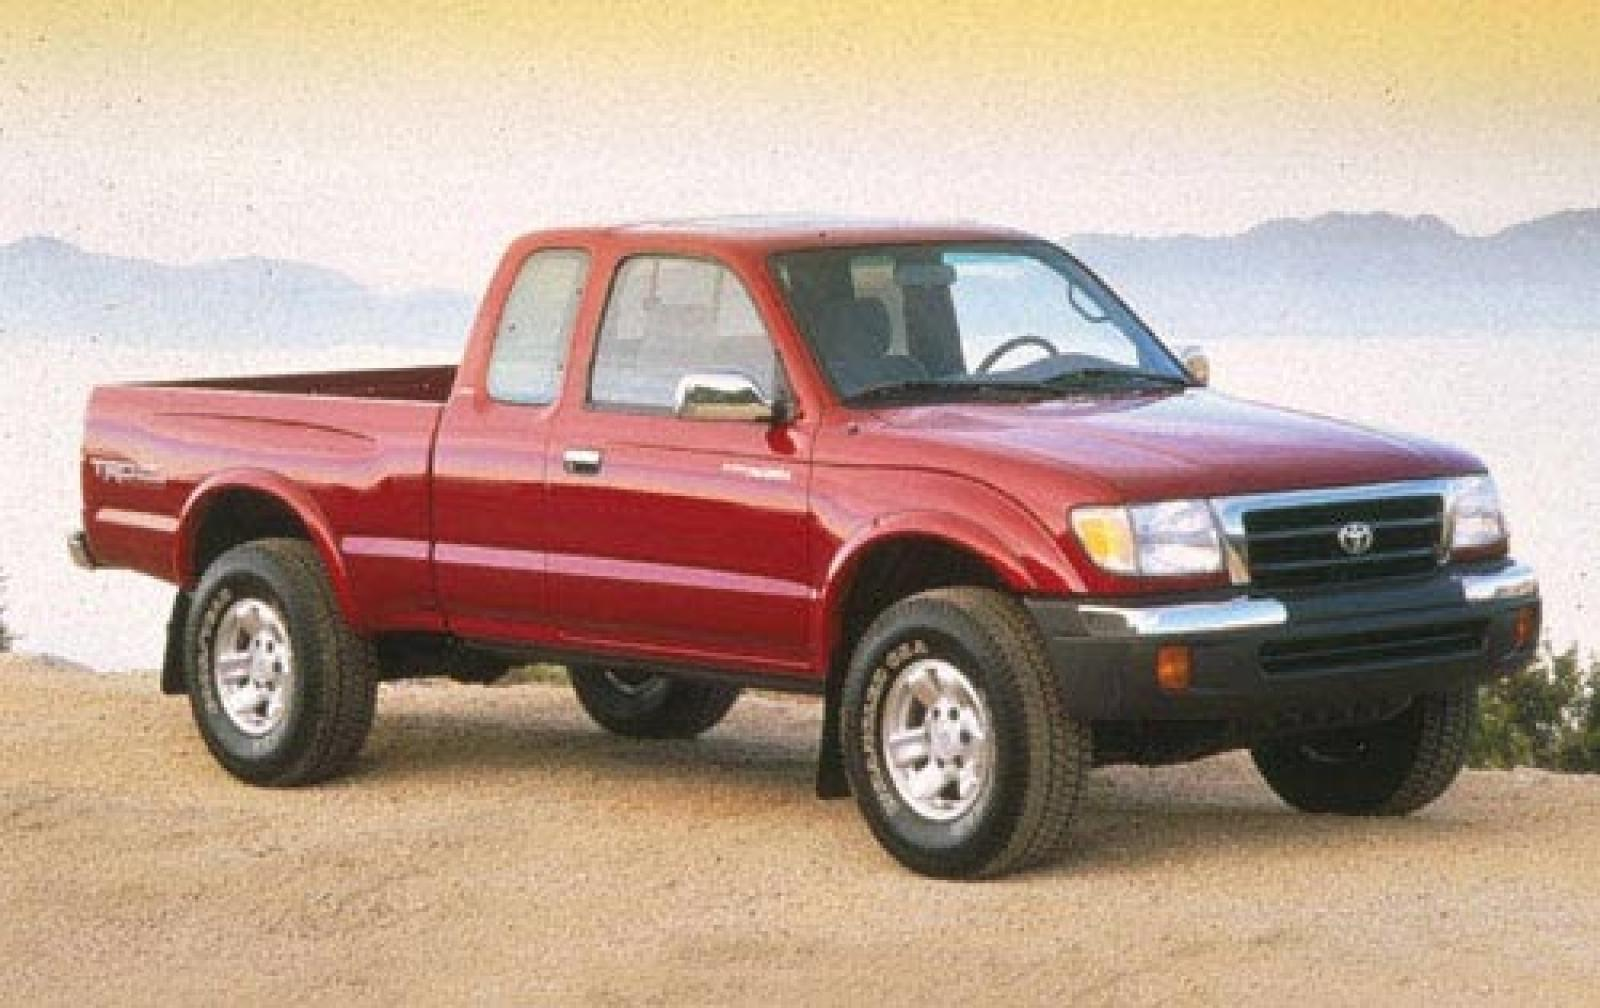 1999 toyota tacoma information and photos zombiedrive. Black Bedroom Furniture Sets. Home Design Ideas